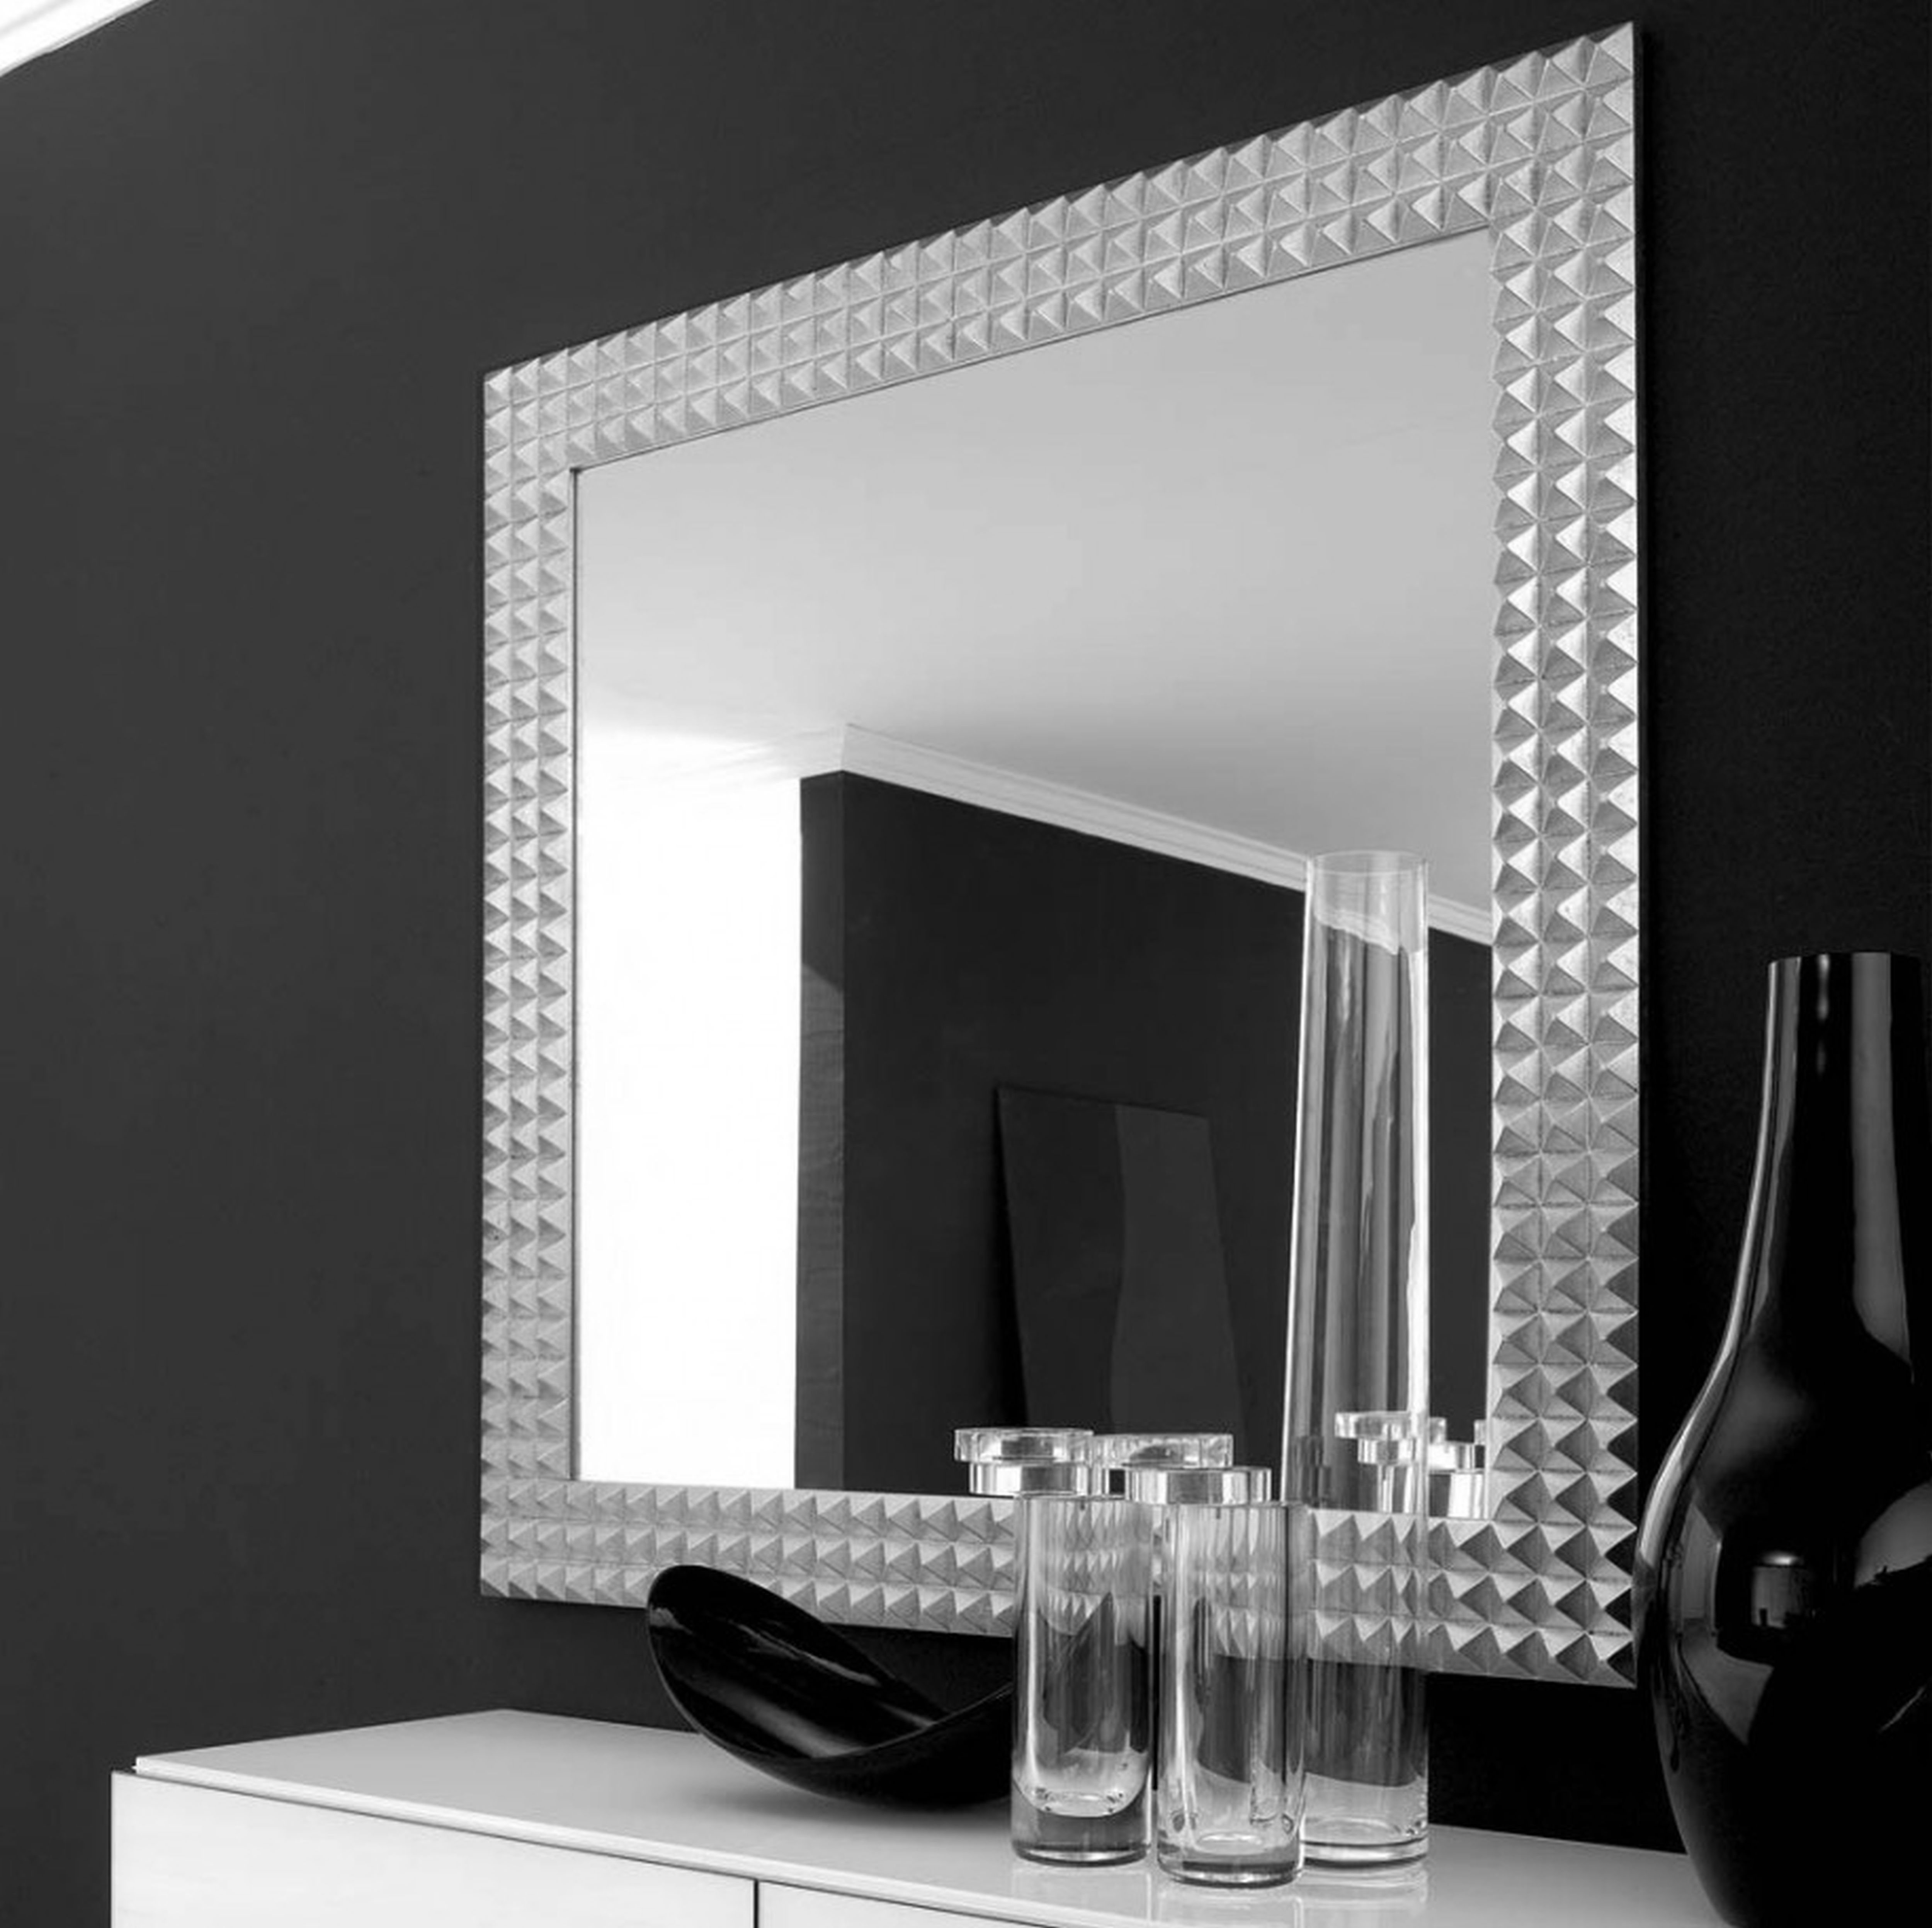 Large Wall Mirror With Black Frame Large Wall Mirror With Black Frame black decorative mirrors 5000 X 4989